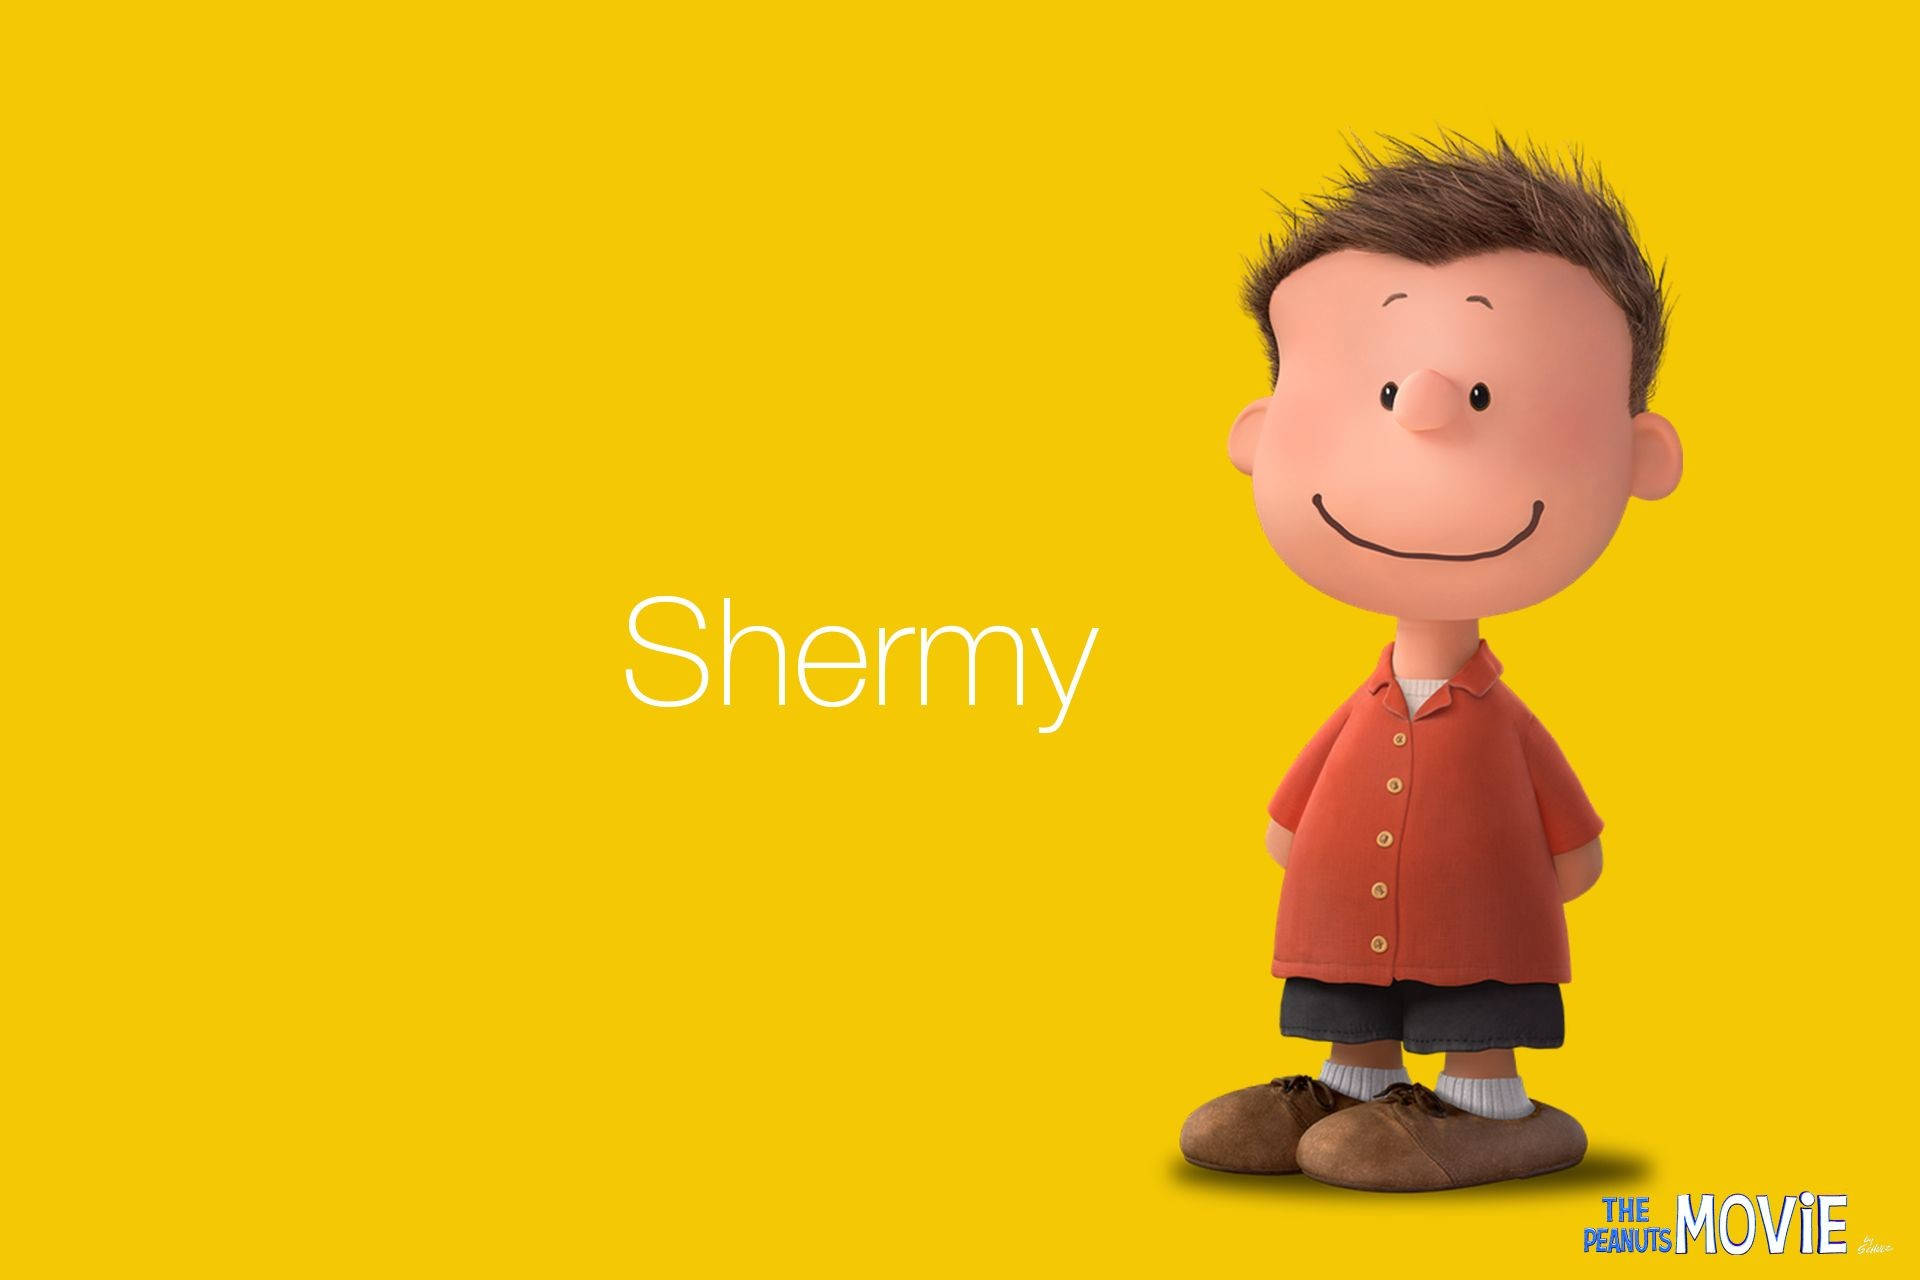 Res: 1920x1280, Shermy wallpaper from The Peanuts Movie | VolGanga